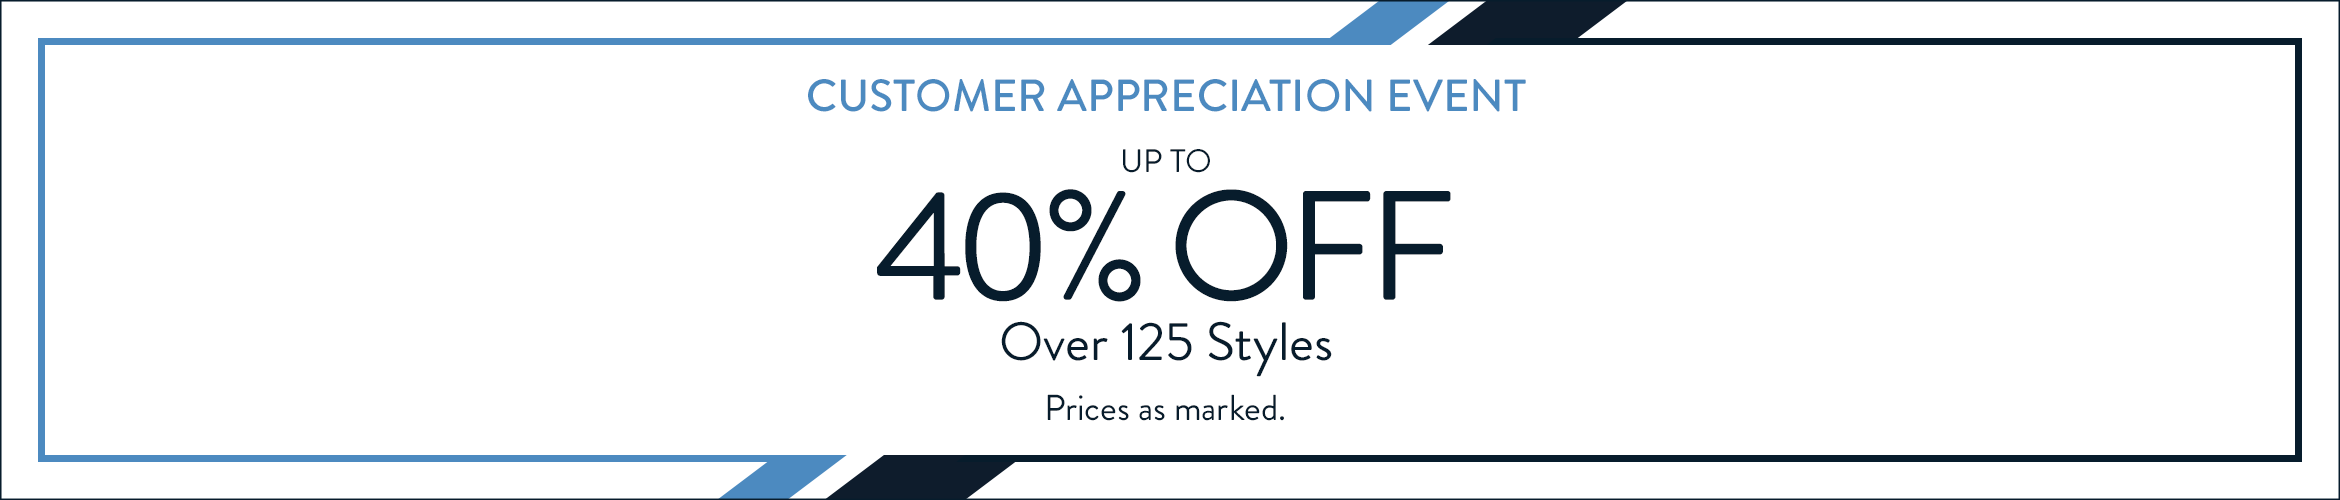 Customer Appreciation Event. Up to 40% off over 125 styles. Priced as marked.